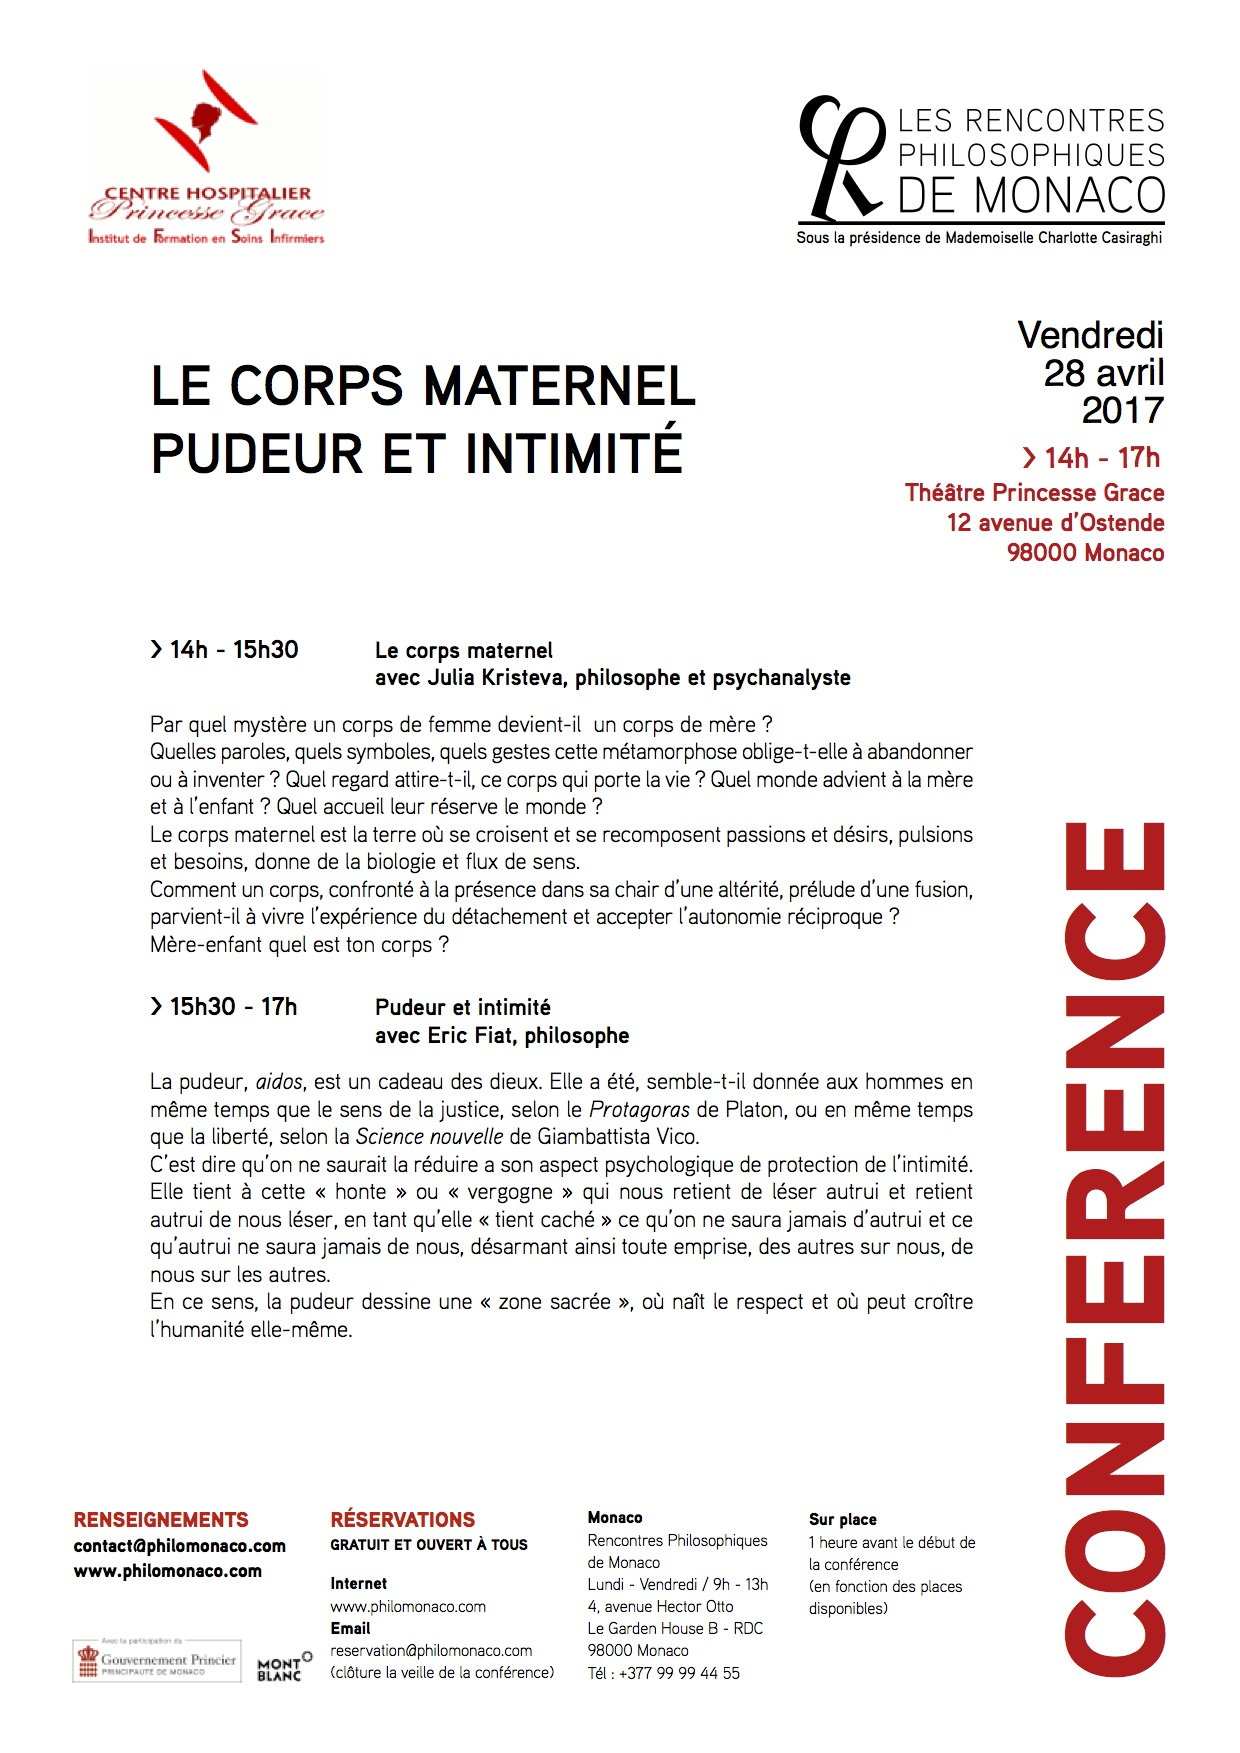 2761, 2761, Conférence Le Corps maternelPudeur et intimité, conference-le-corps-maternelpudeur-et-intimite.jpg, http://philomonaco.com/wp-content/uploads/2017/02/conference-le-corps-maternelpudeur-et-intimite.jpg, , 2, , , conference-le-corps-maternelpudeur-et-intimite, 2017-03-28 09:35:58, 2017-03-28 09:42:36, image/jpeg, image, http://philomonaco.com/wp-includes/images/media/default.png, 1240, 1753, Array